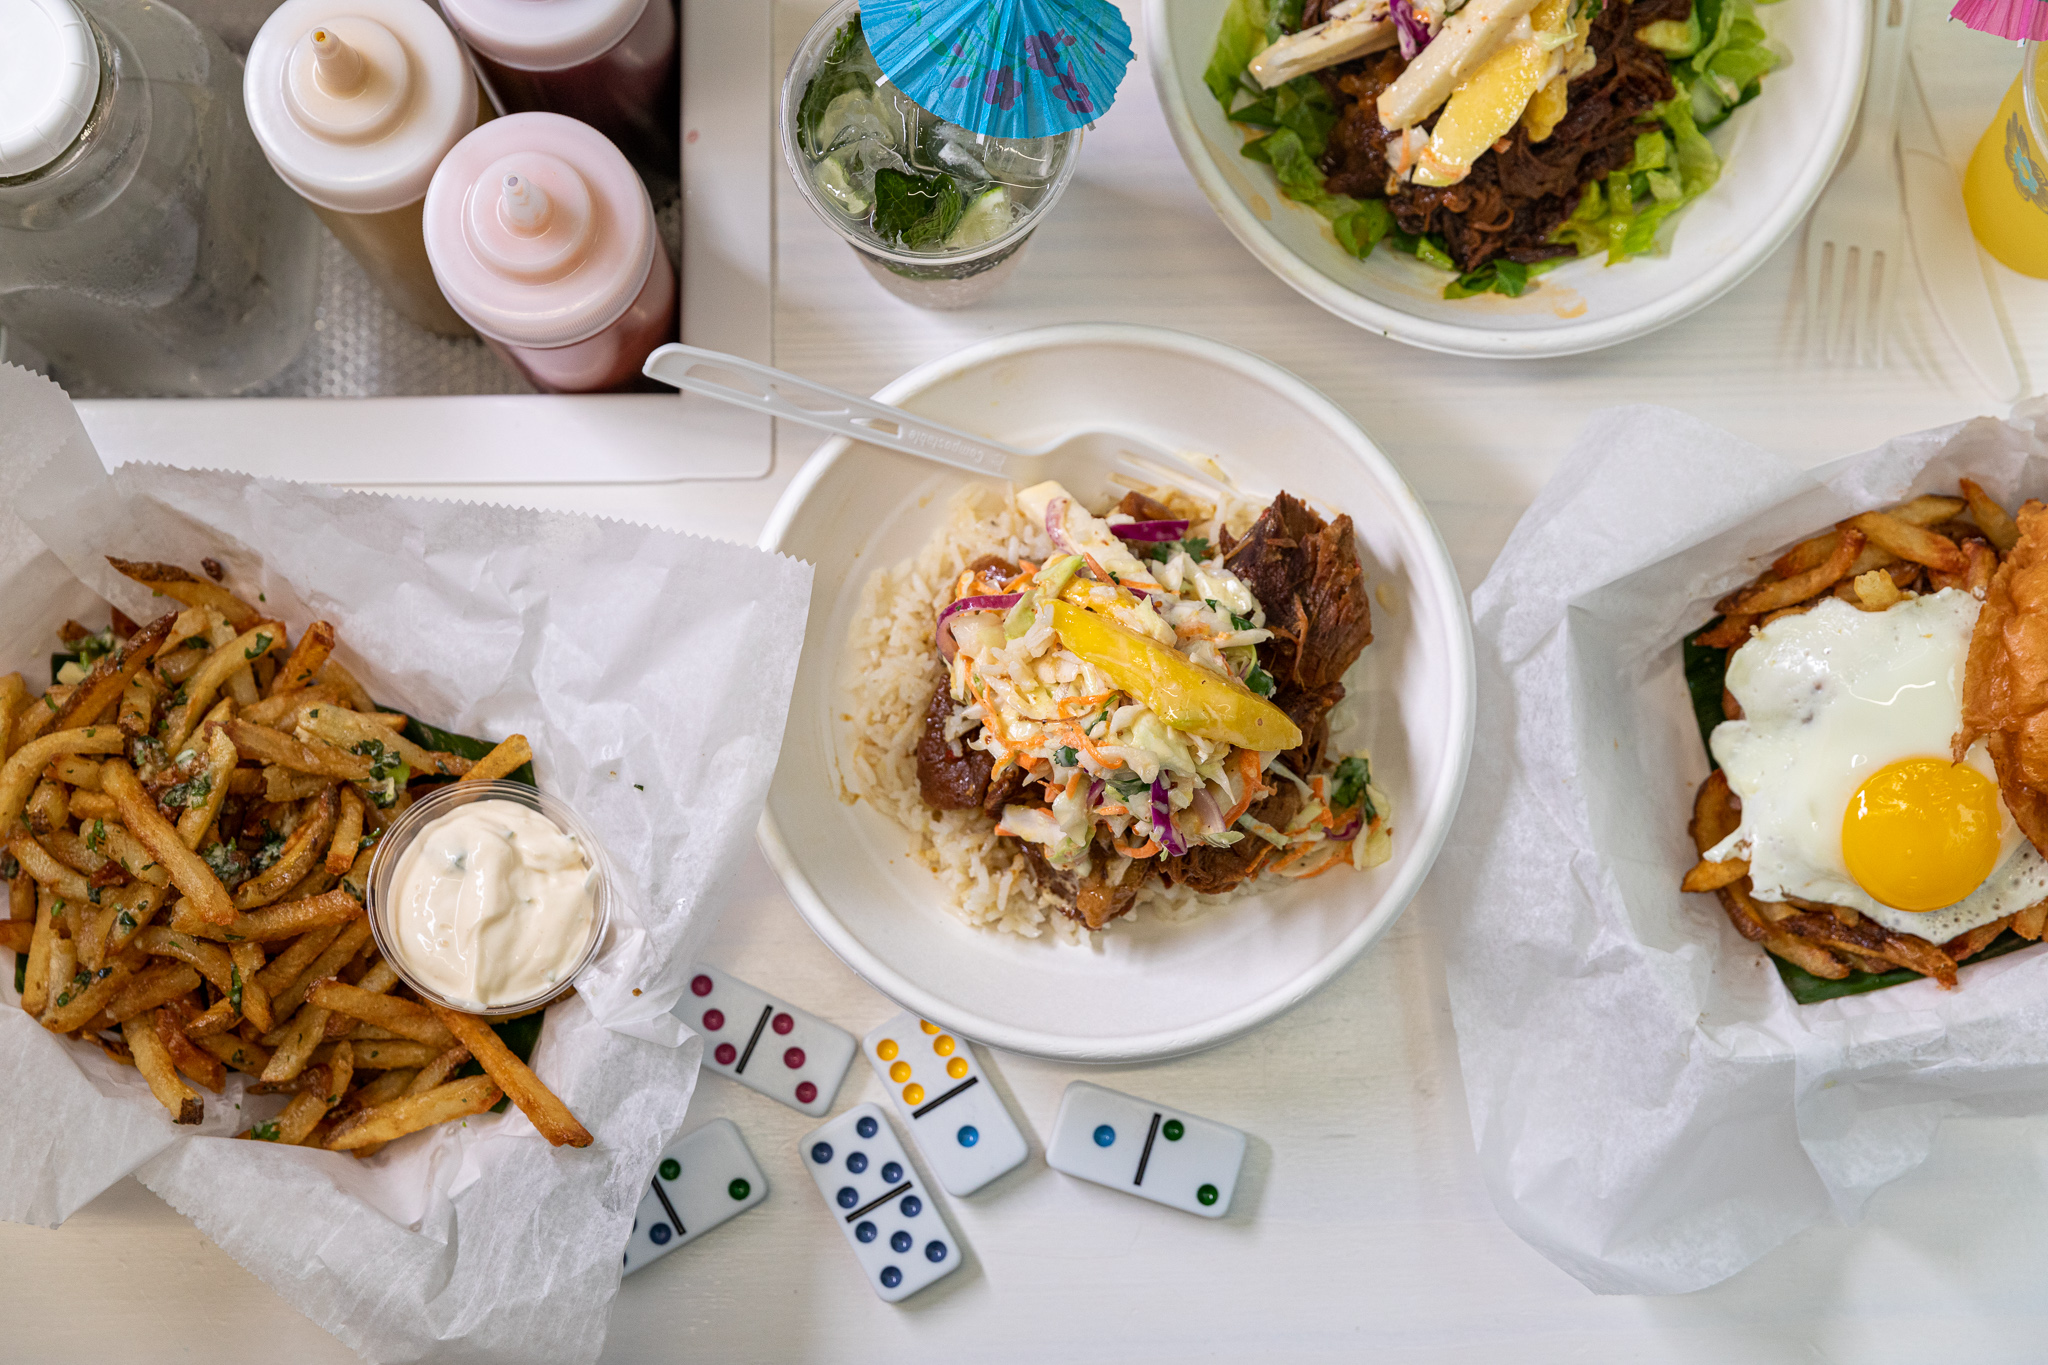 Garlic cilantro fries, a rice bowl, and a burger with a fried egg and shoestring fries on a white table surrounded by dominos, squeeze bottles of sauce, and a mojito.